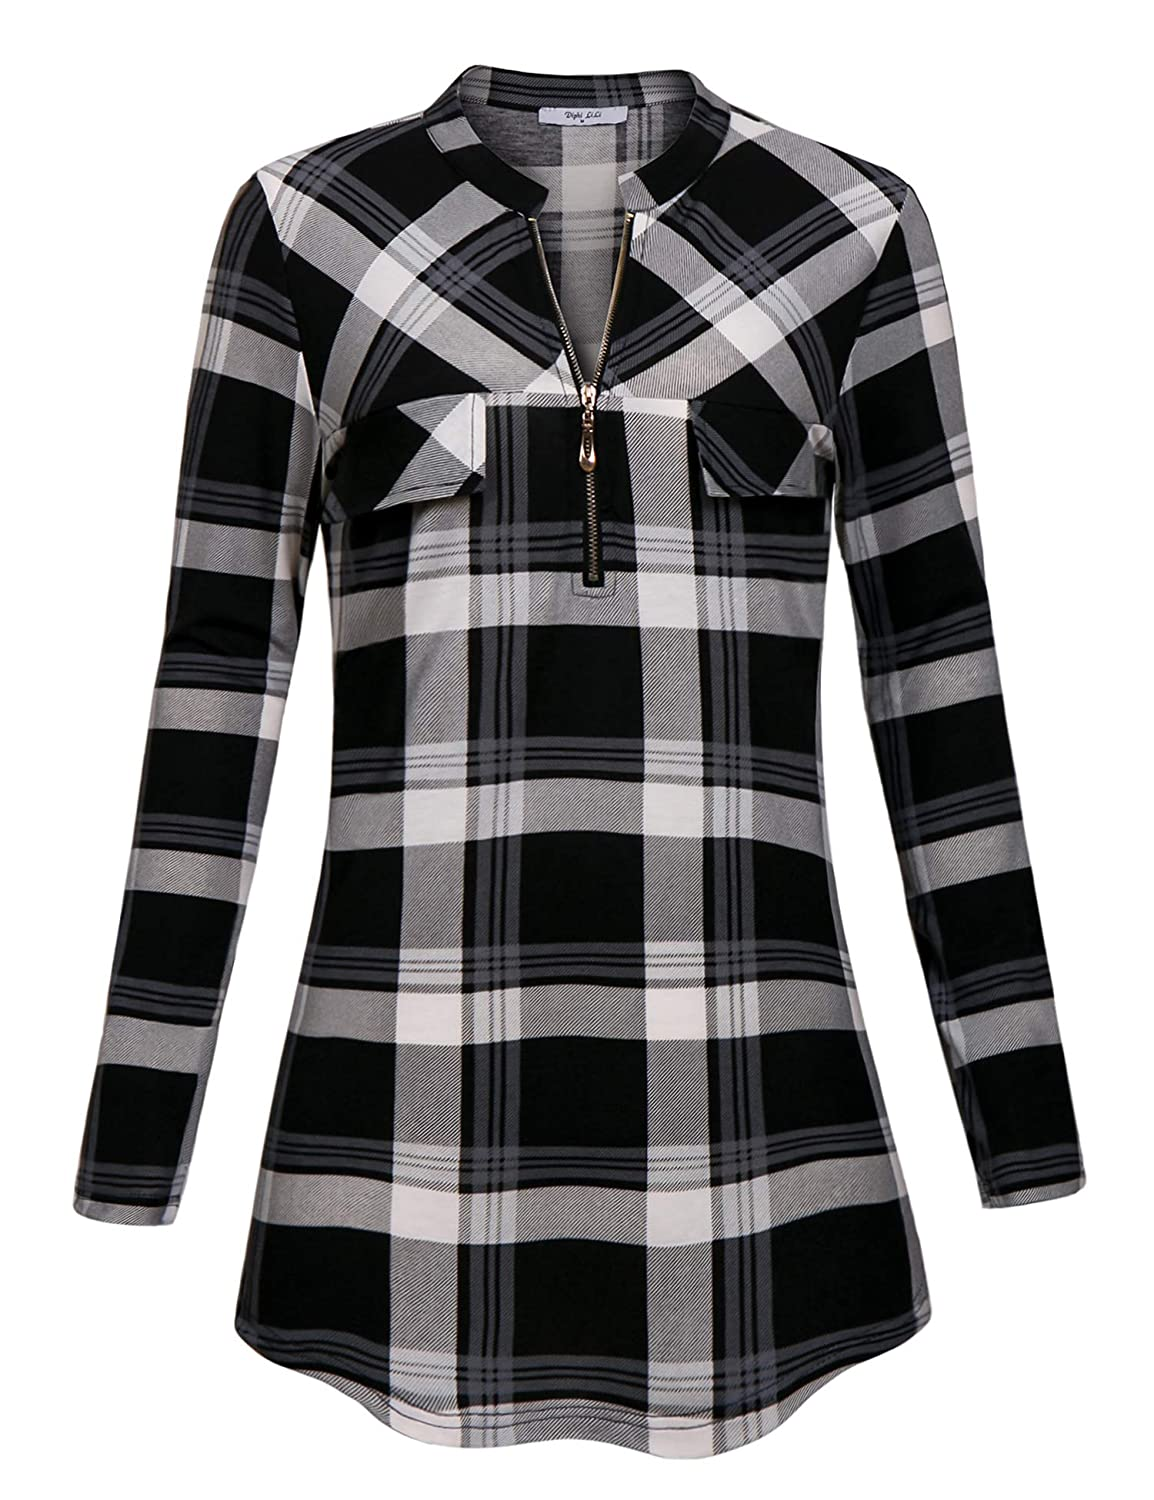 3da15af8747 Style:Basic casual women shirt,elegant and classy for work and office, yet  cool and casual for a weekend away. Suitable Season: Suitable for spring,  autumn, ...